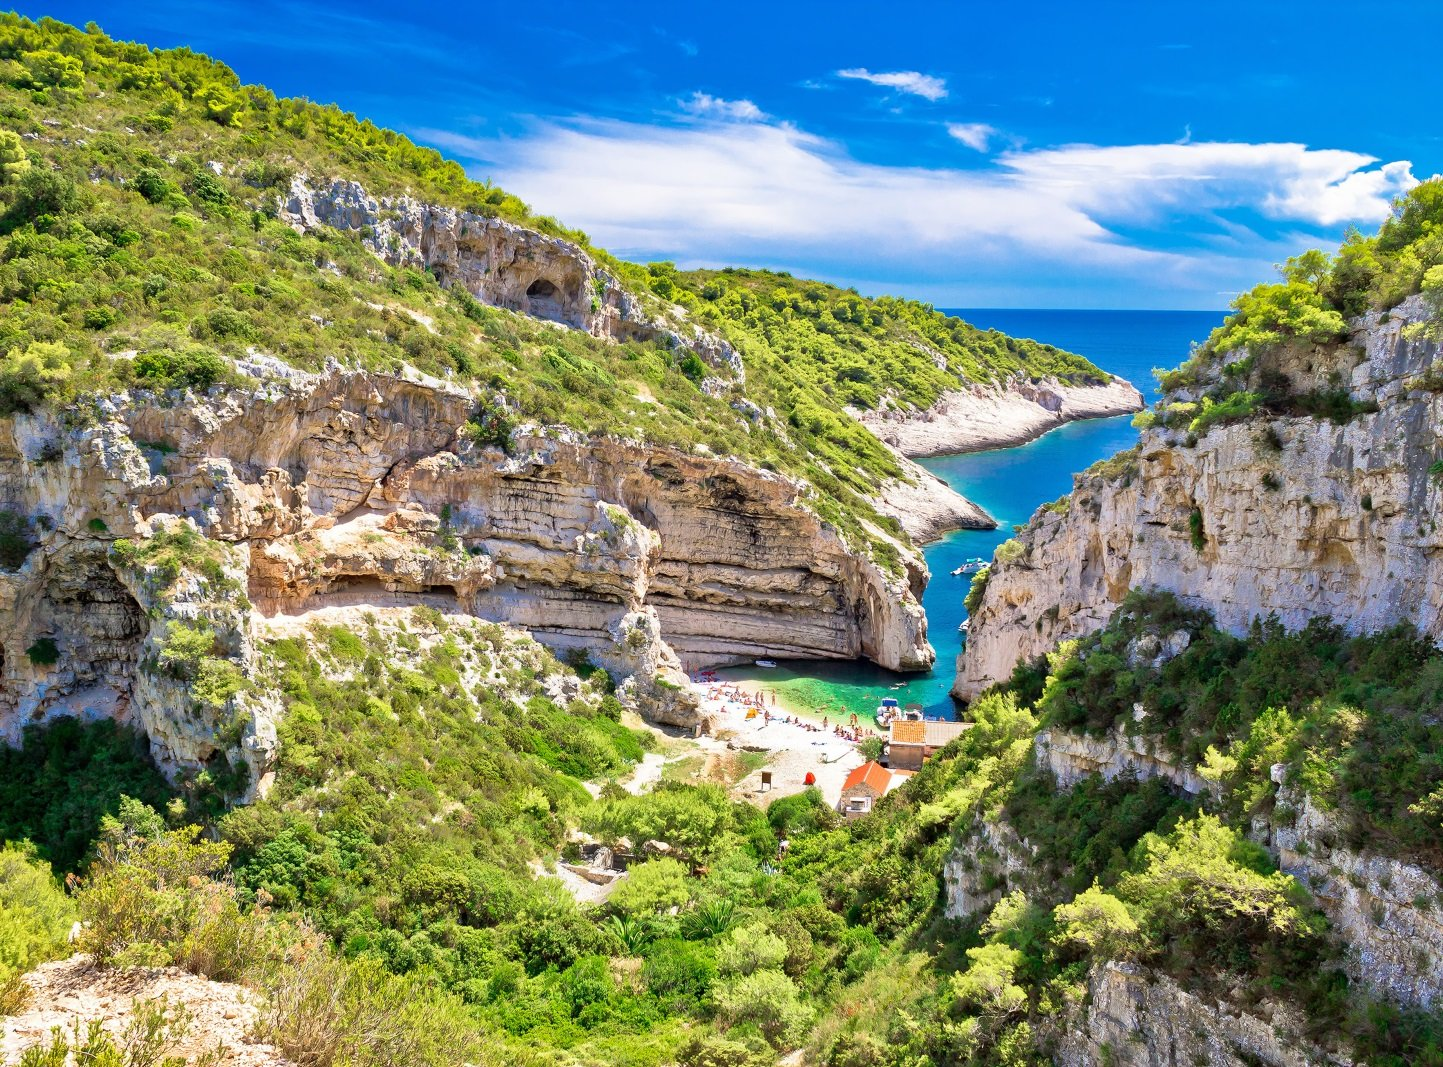 View from the hill of the Stiniva beach on island Vis hidden inside the Stiniva bay